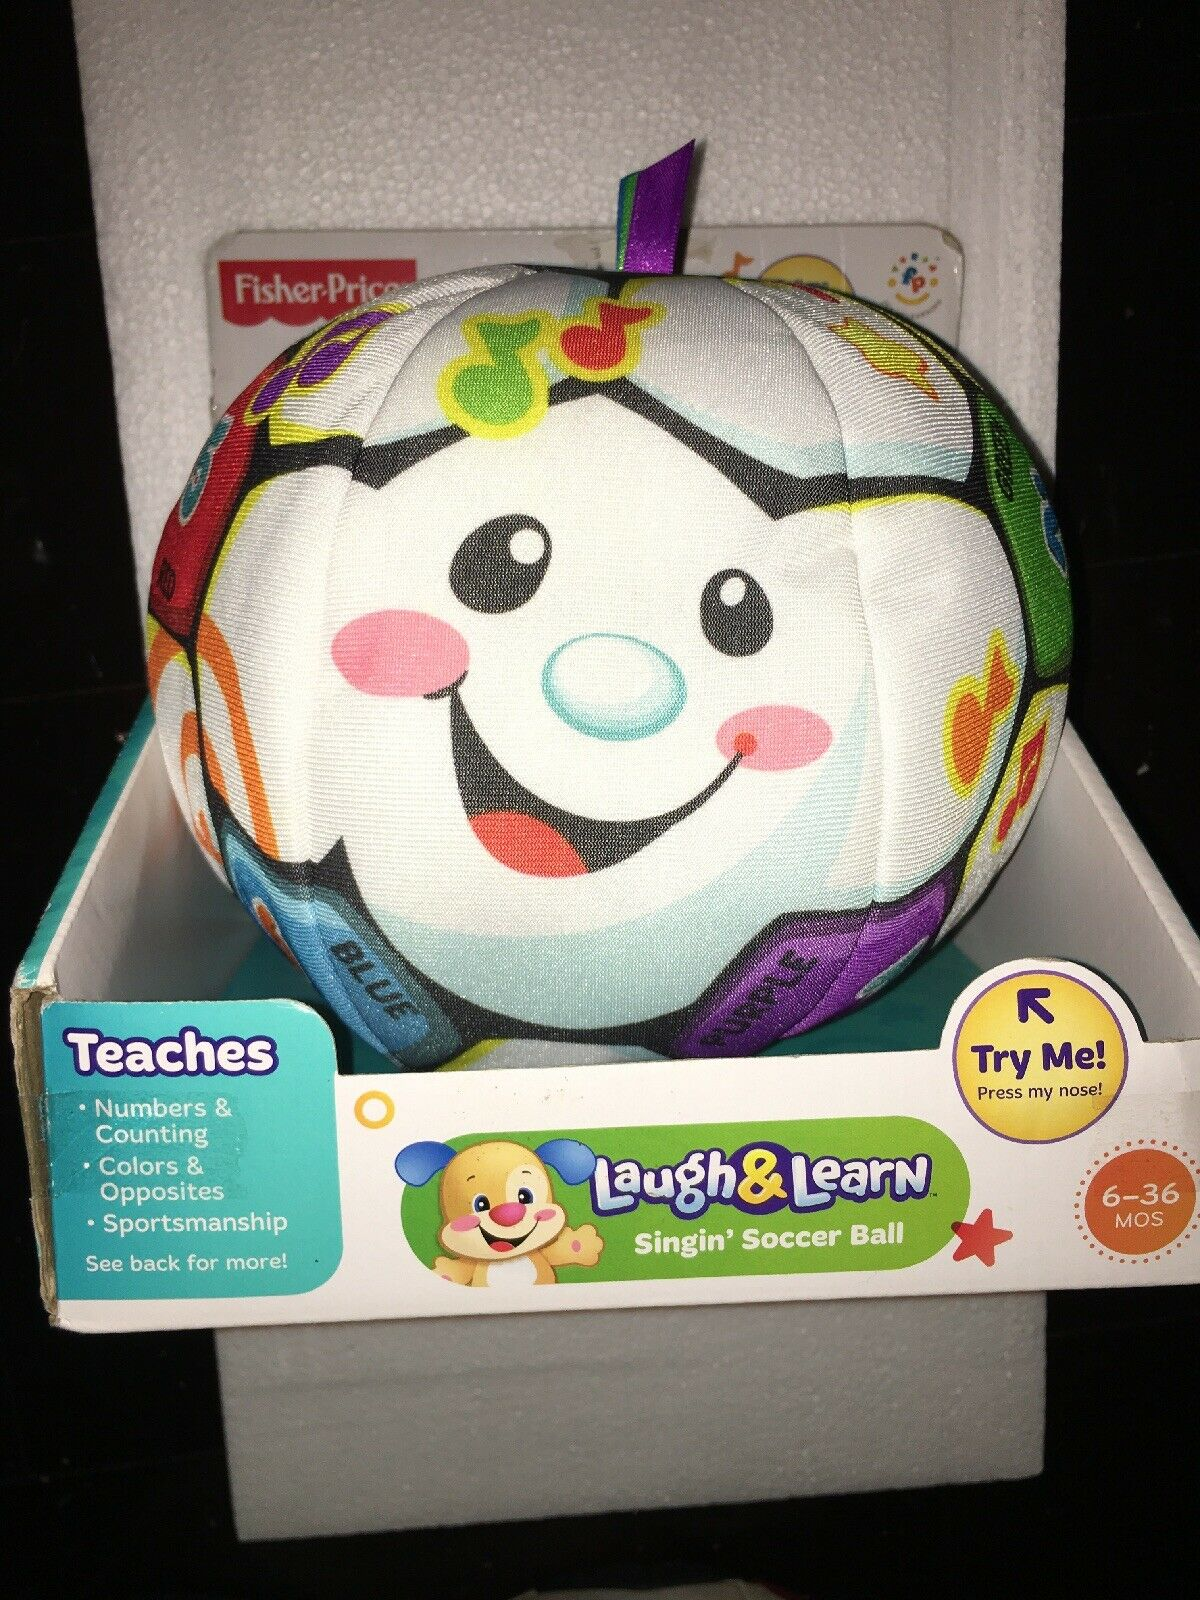 Singin Soccer Ball Fisher-Price Laugh /& Learn Toy Girls Boys Baby Kids Toddler